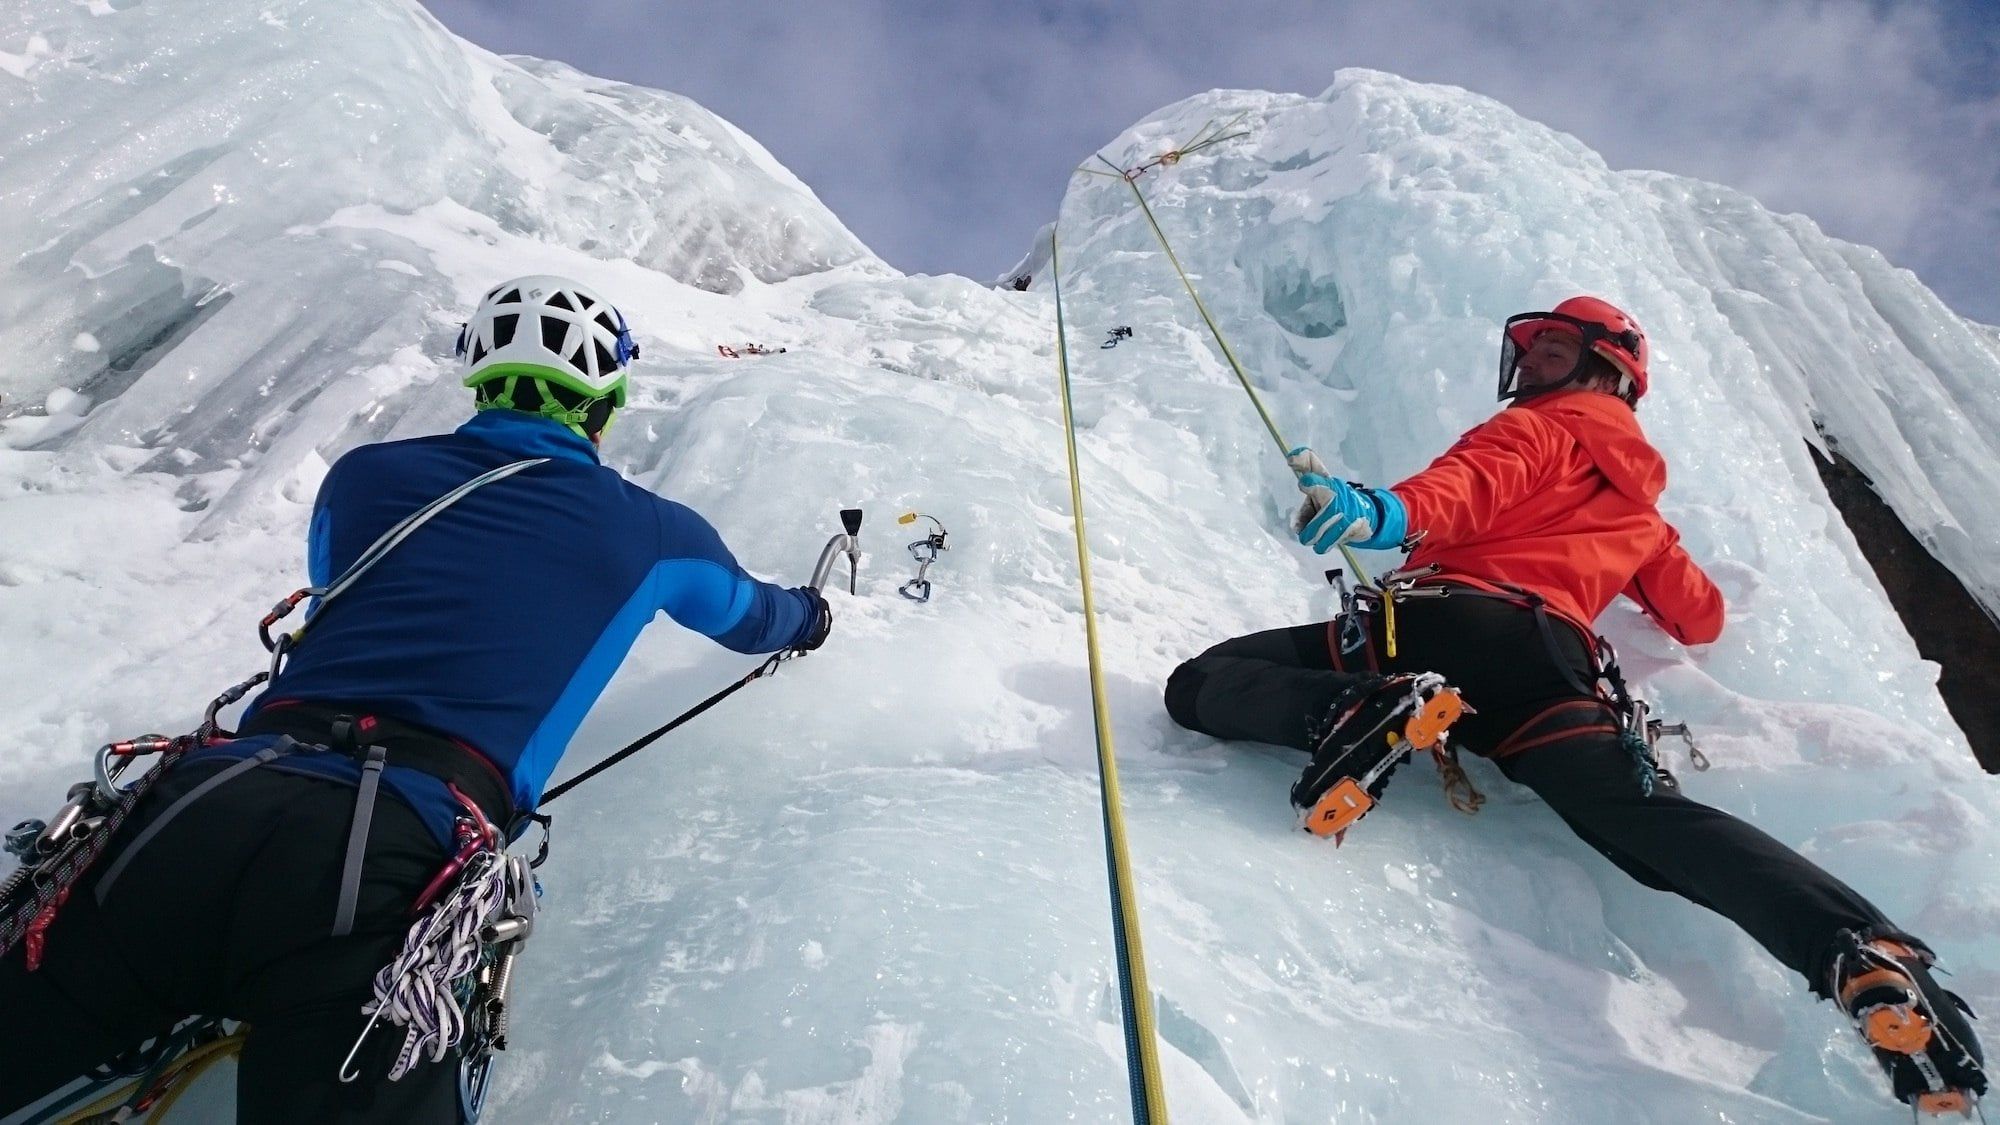 Ice Climbing // From hot springing to dog sledding to skijoring, plan an adventurous vacation to Montana in winter with these 8 outdoor winter activities.